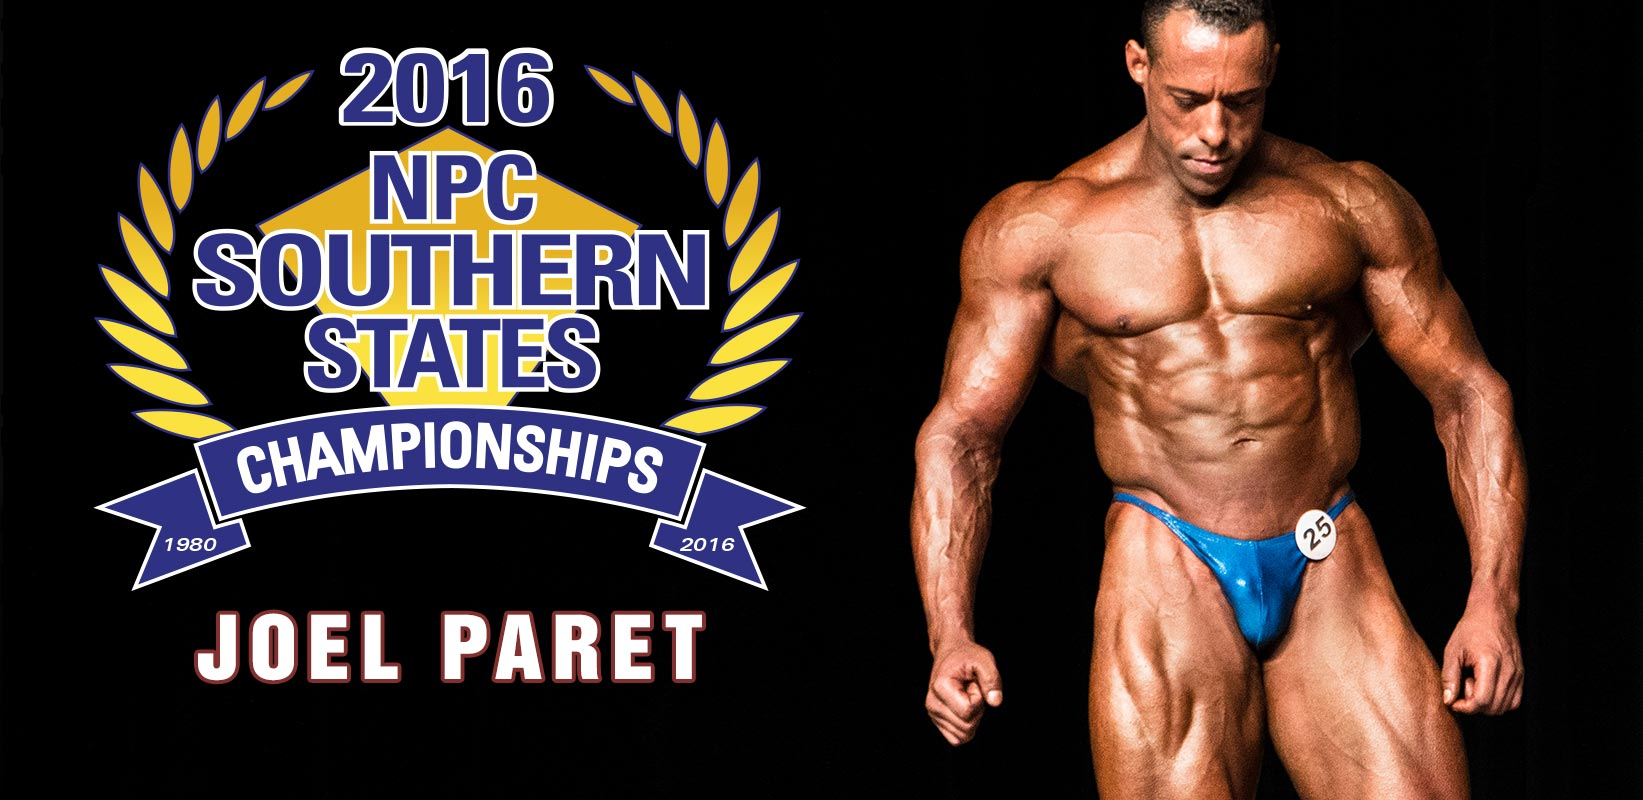 blog_photography_npc-southern-state-championships-joel-paret-feature